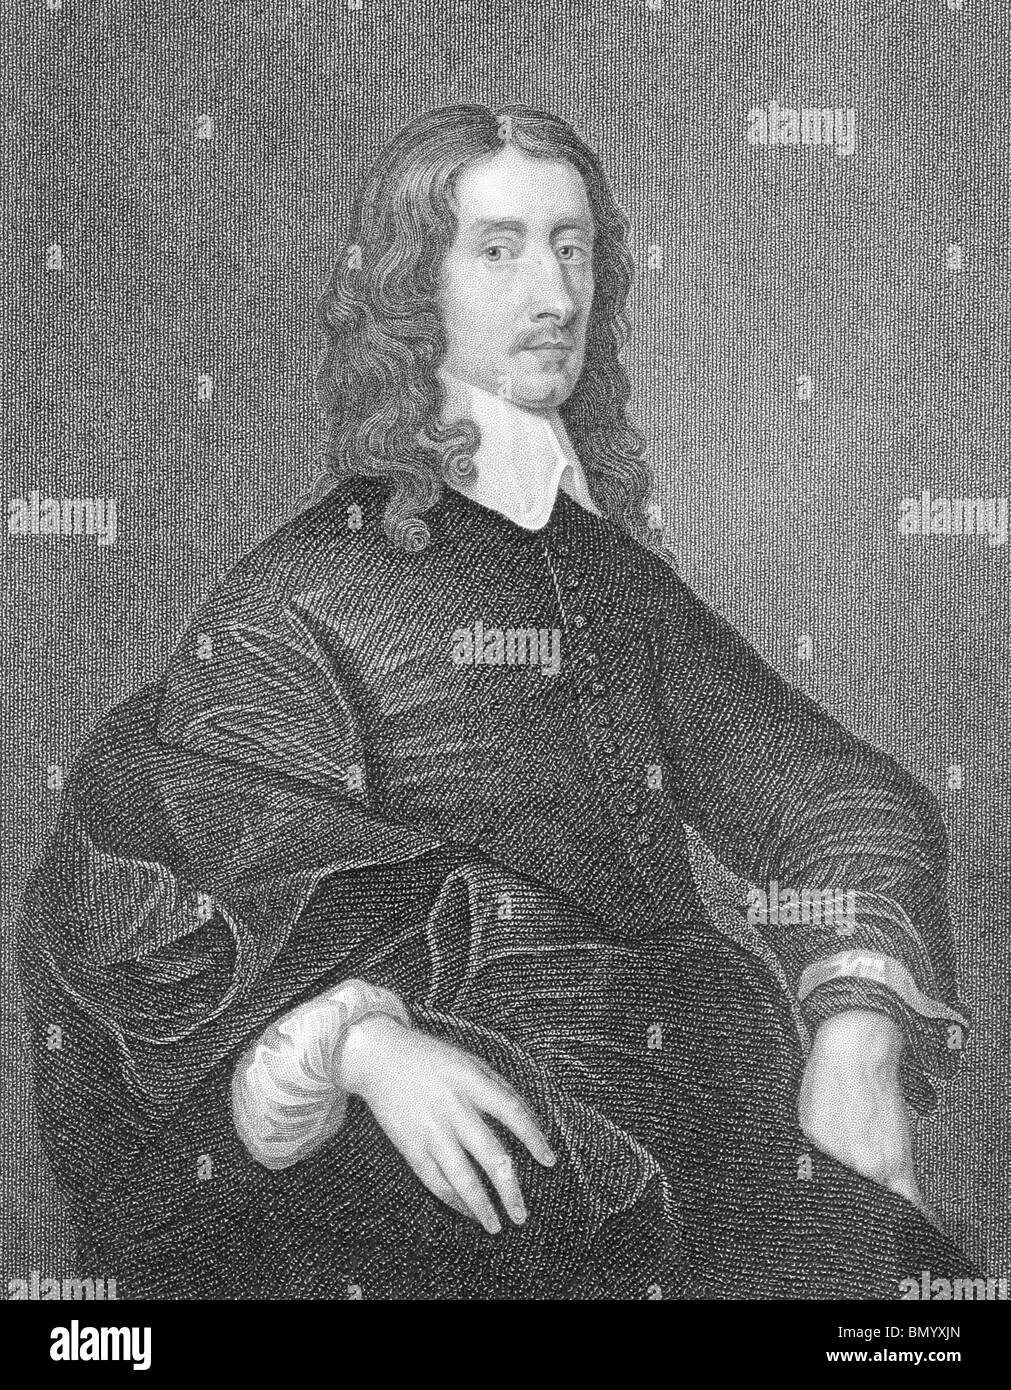 John Selden (1584-1654) on engraving from the 1800s. English jurist, scholar and polymath. - Stock Image